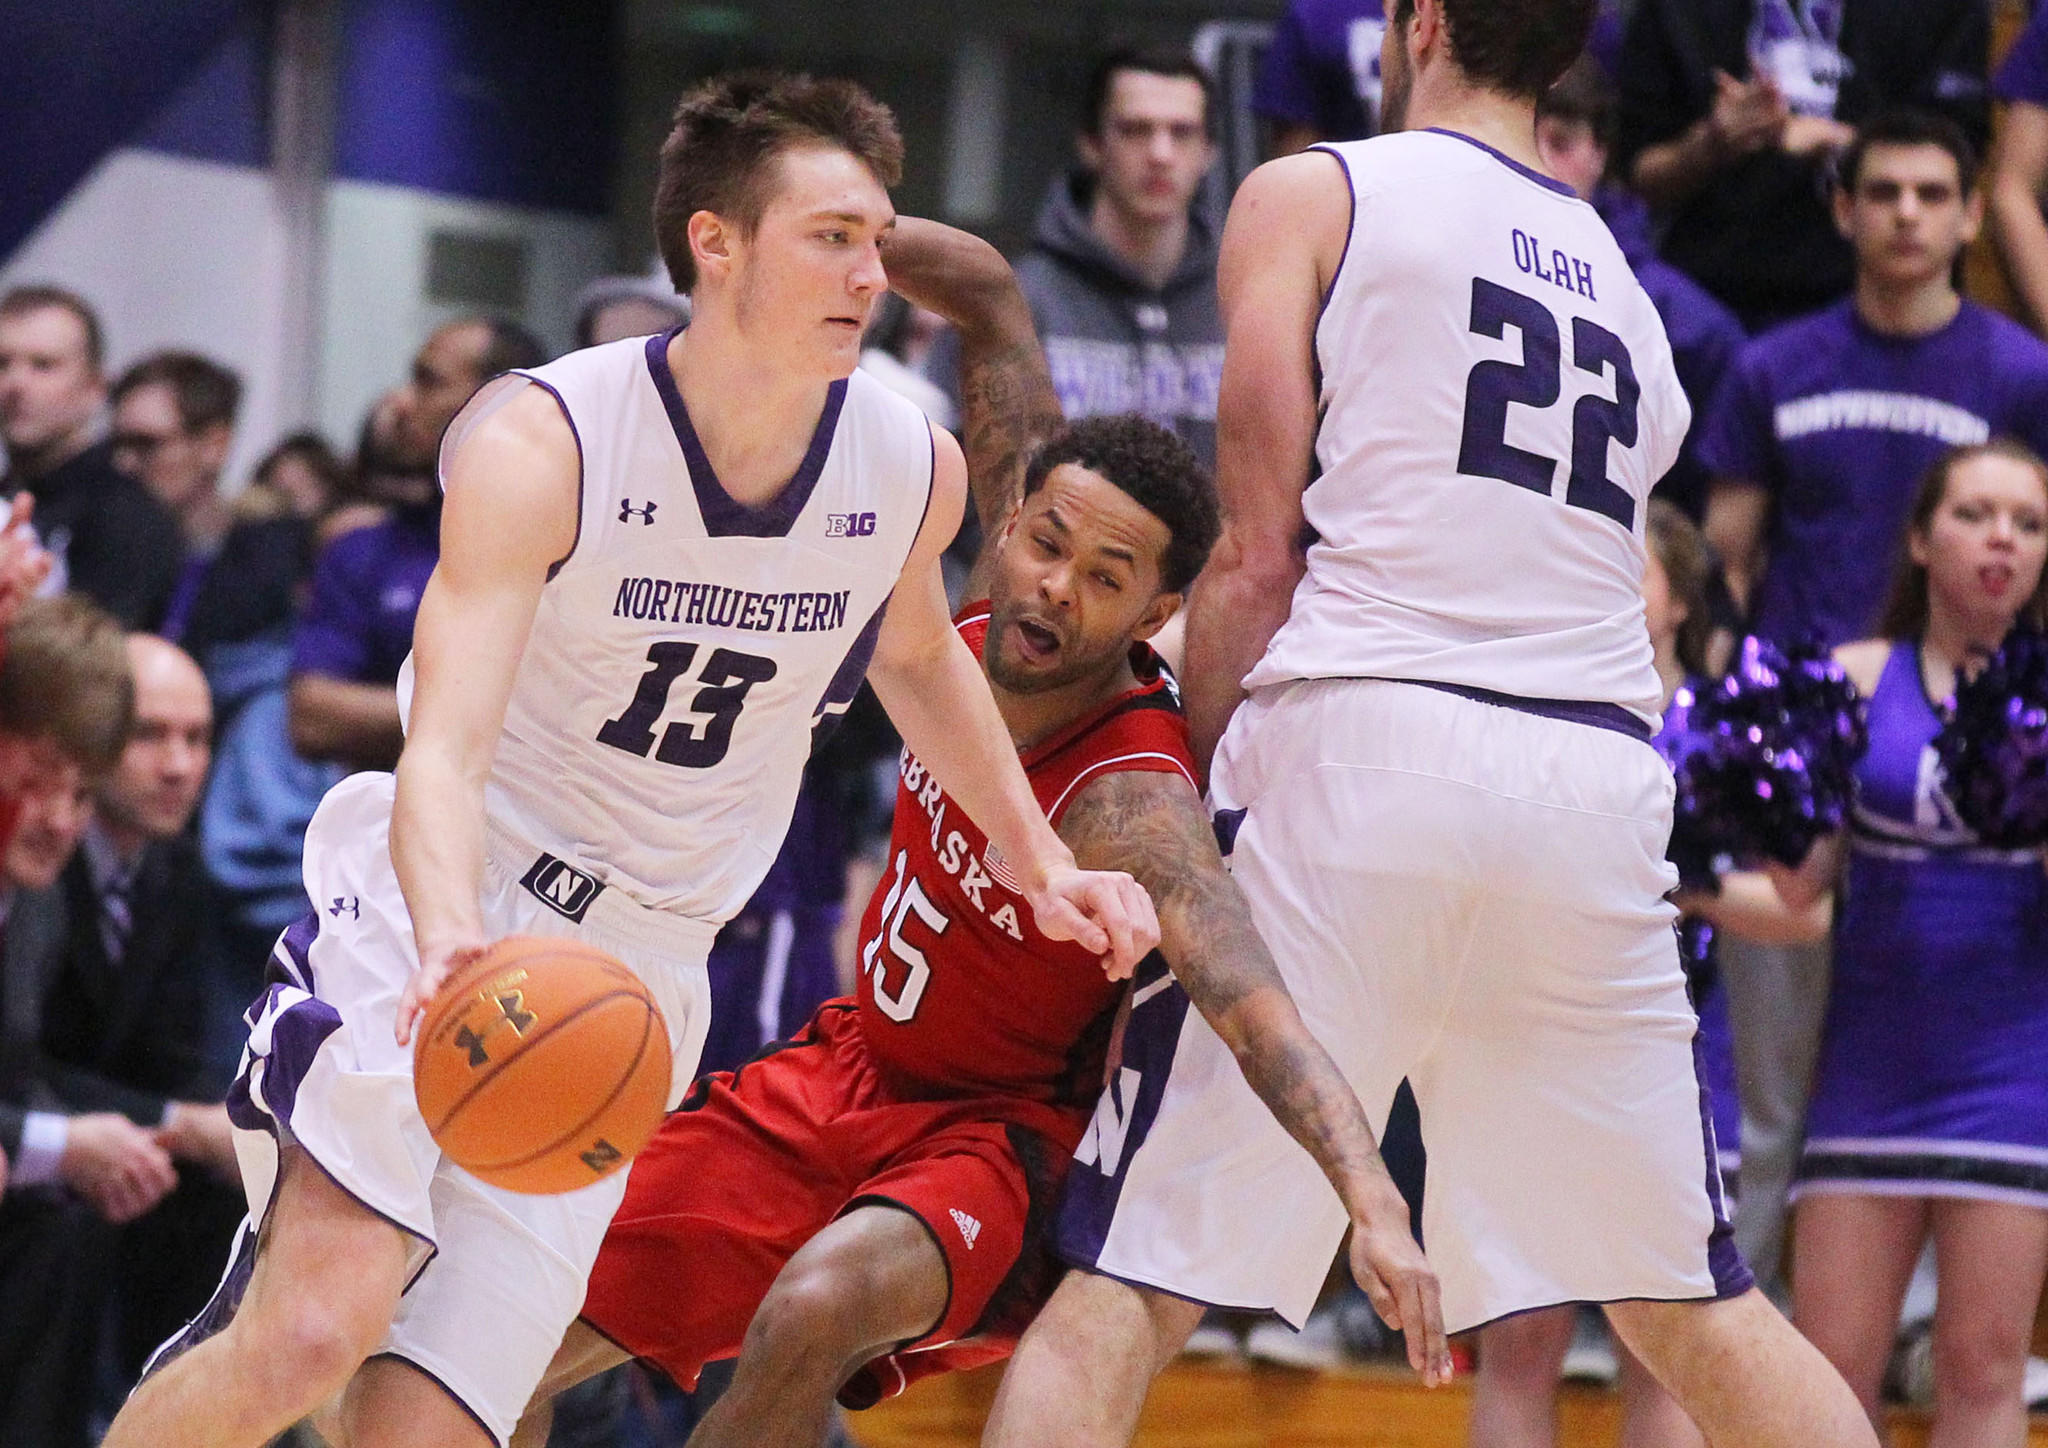 Northwestern Wildcats forward Kale Abrahamson (13) is defended by Nebraska Cornhuskers guard Ray Gallegos (15) during the first half at Welsh-Ryan Arena.